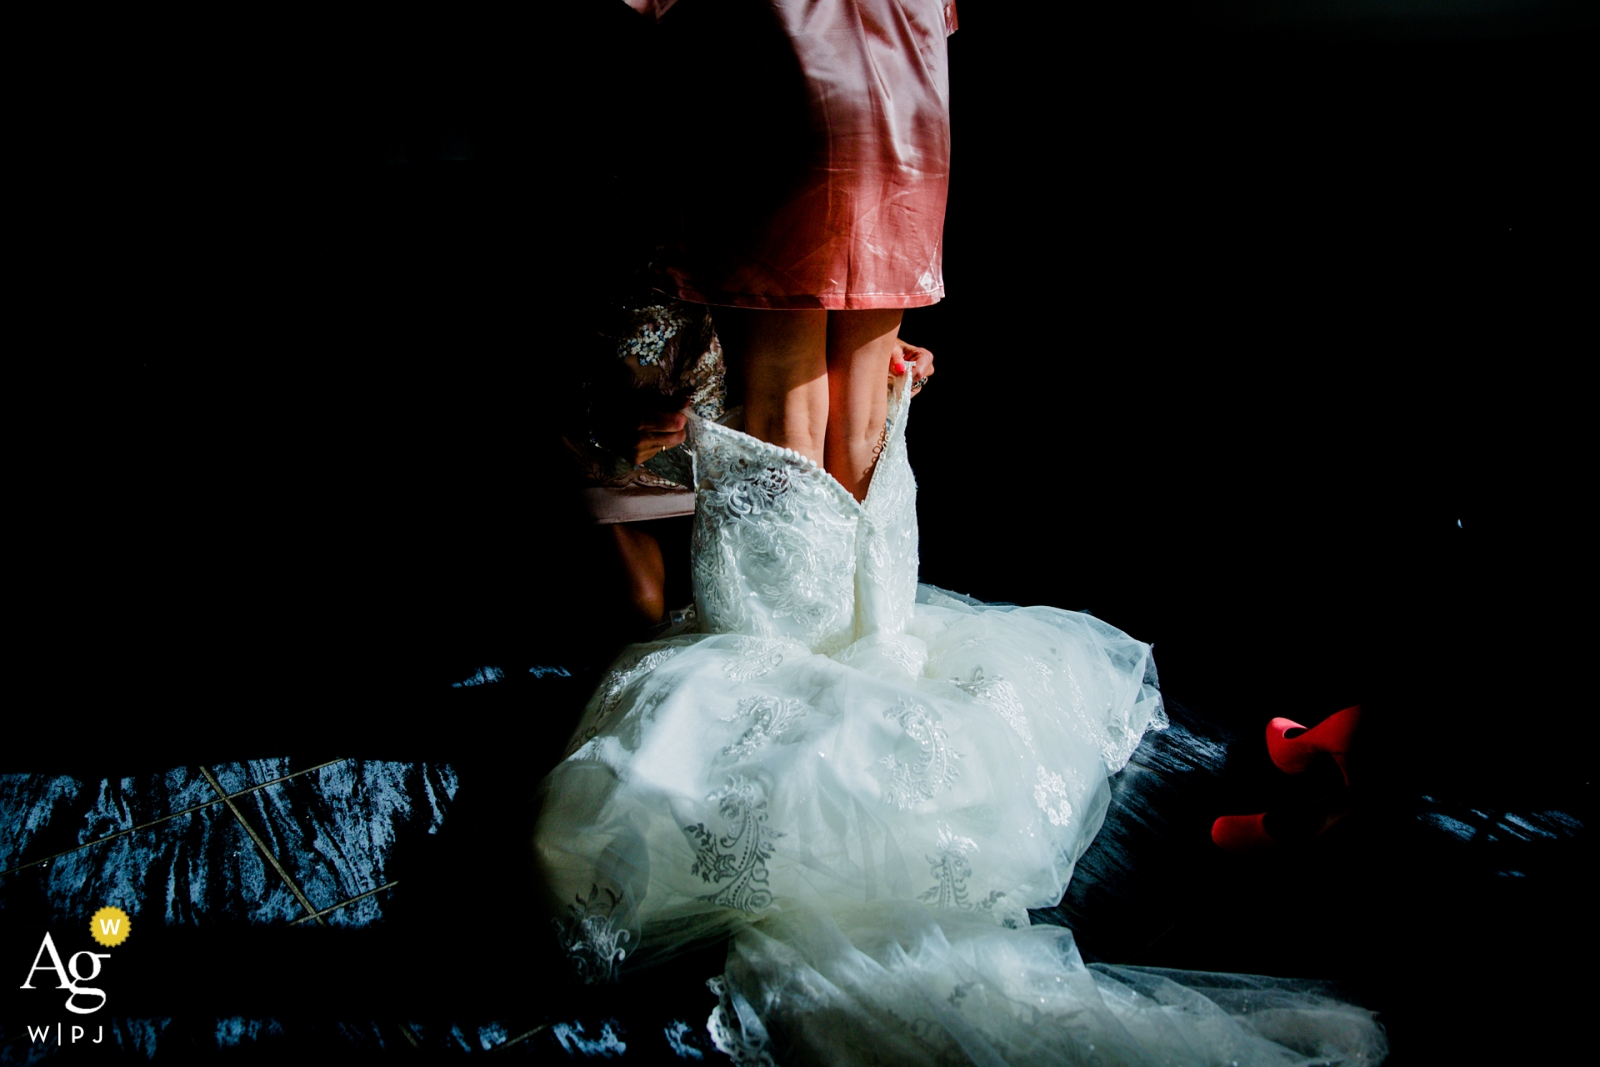 Netherlands artistic creative photography detail of wedding dress going on